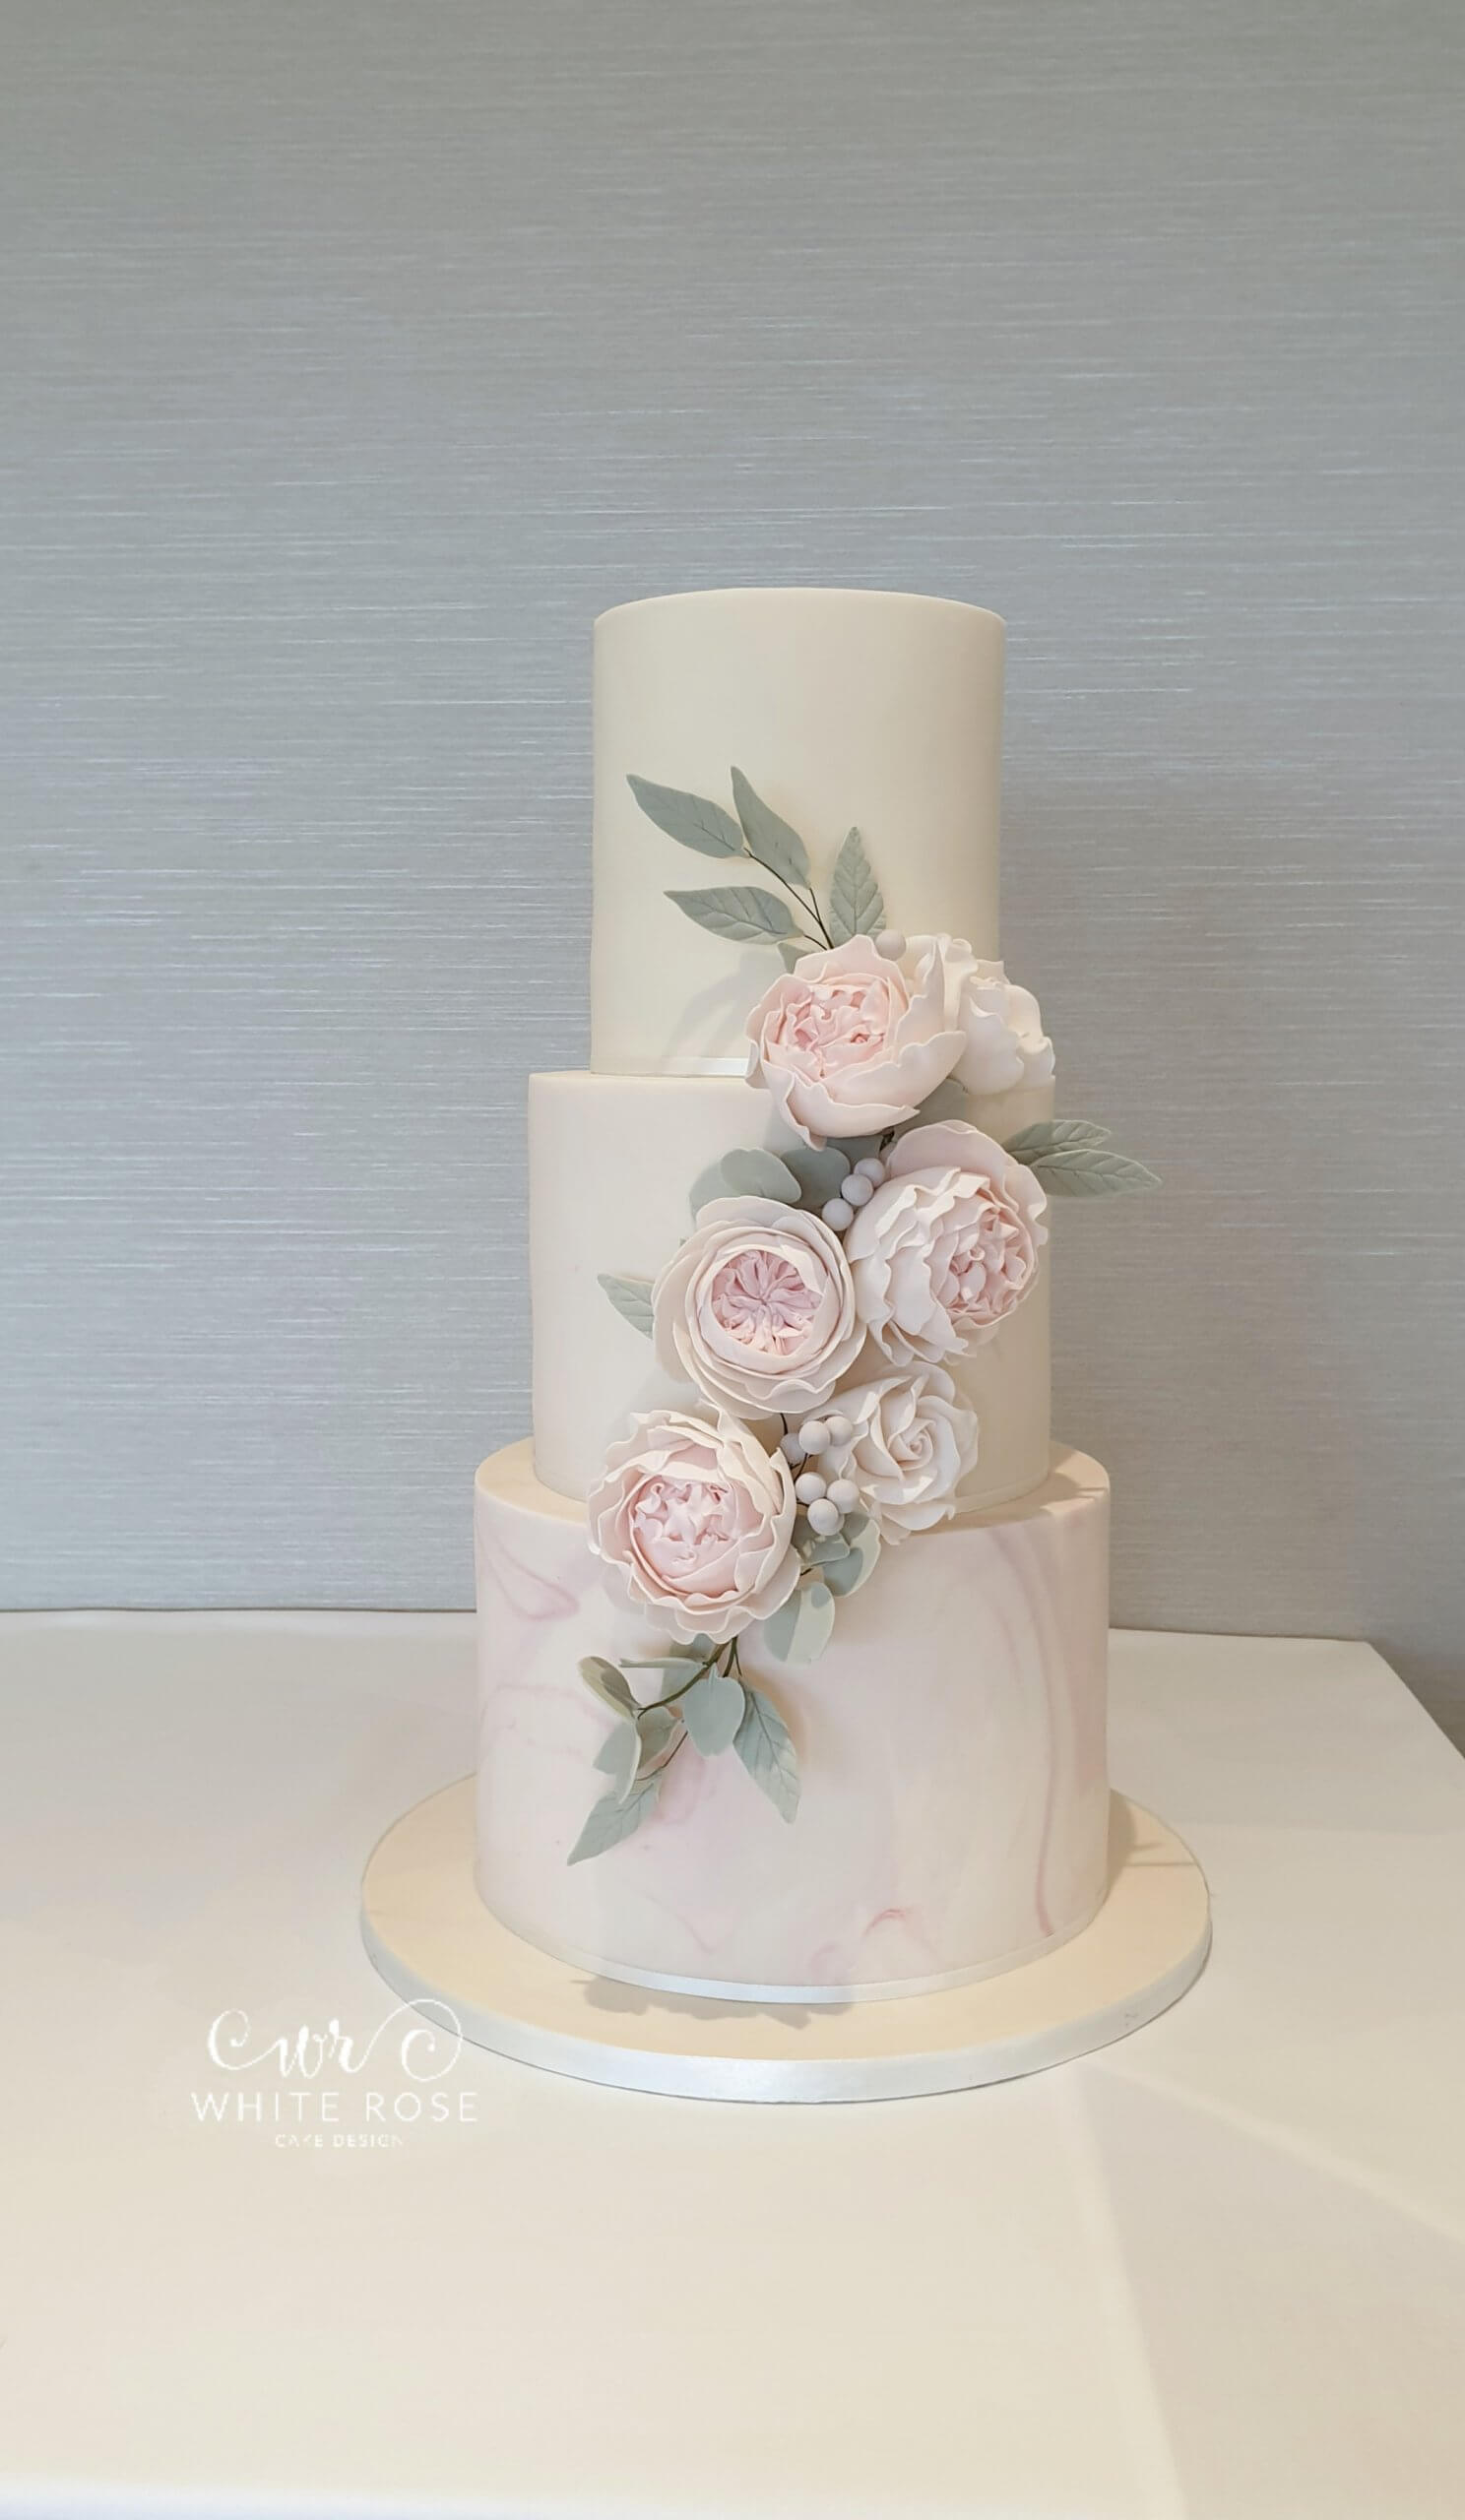 Blush Pink Marble Wedding Cake with Sugar Flowers by White Rose Cake Design Luxury Wedding Cakes in Holmfirth West Yorkshire (3)